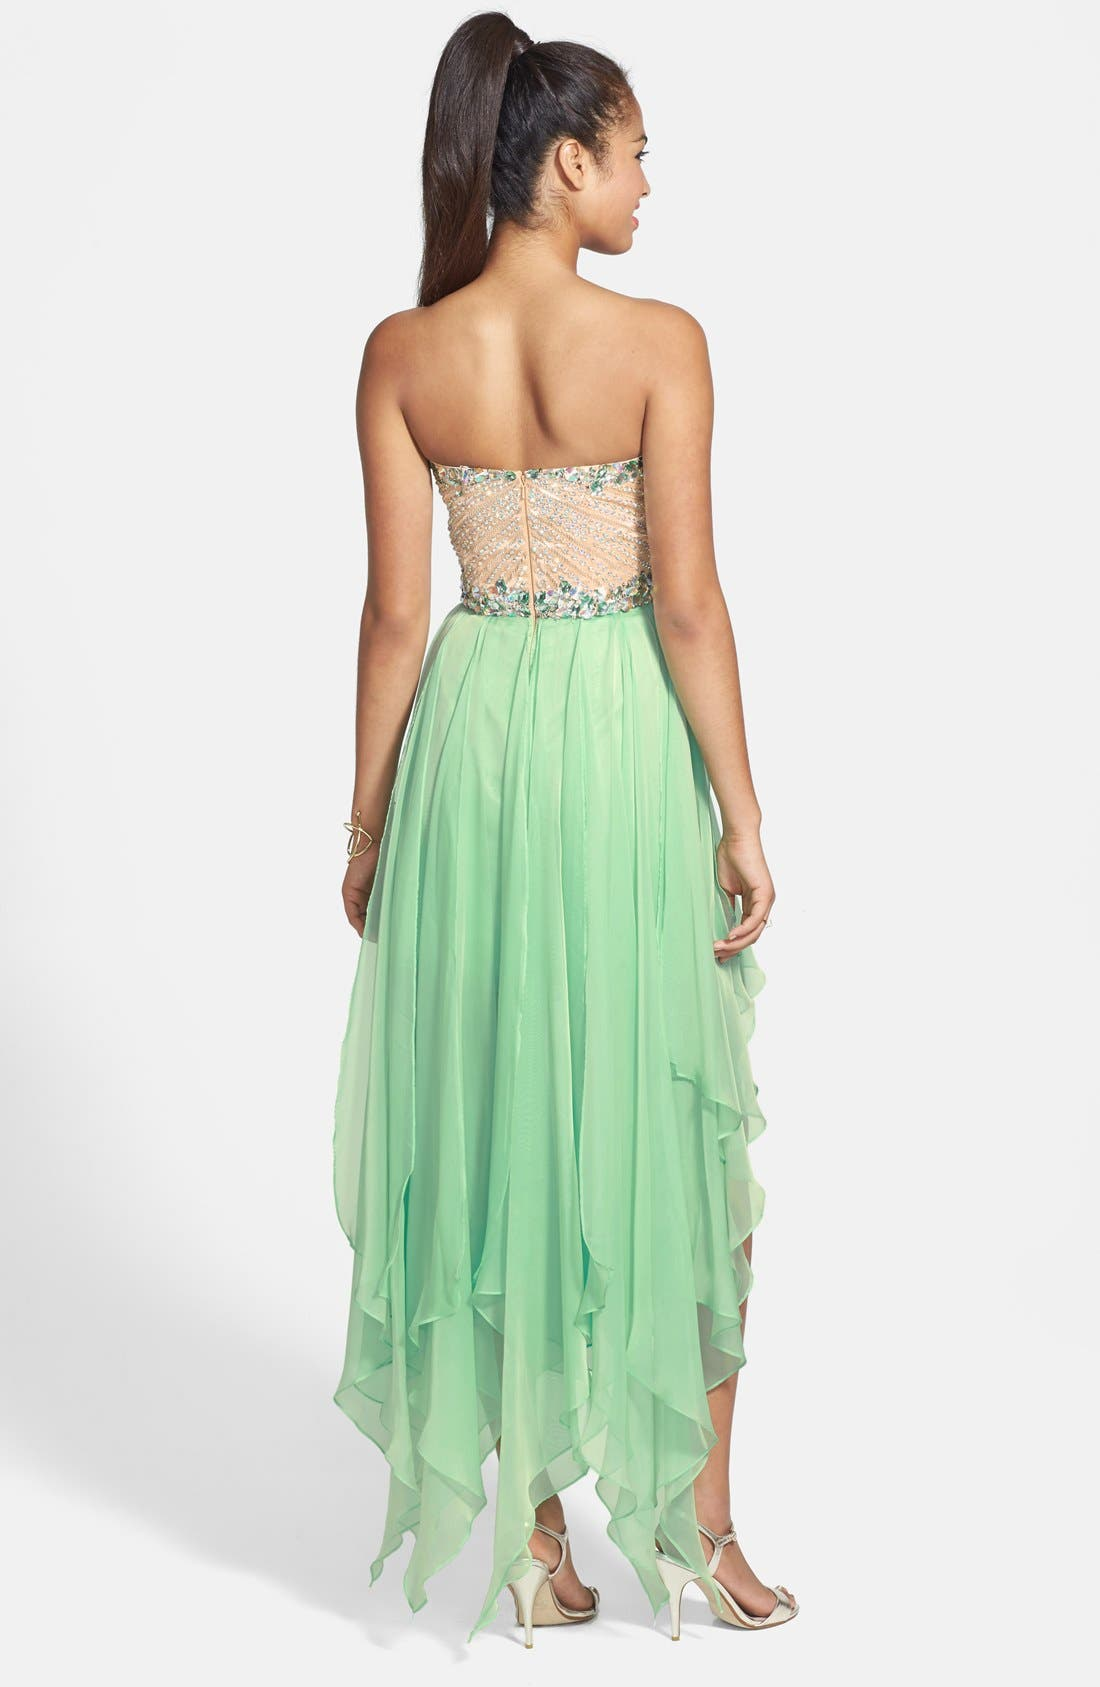 SHERRI HILL, Strapless High/Low Gown, Alternate thumbnail 2, color, 330